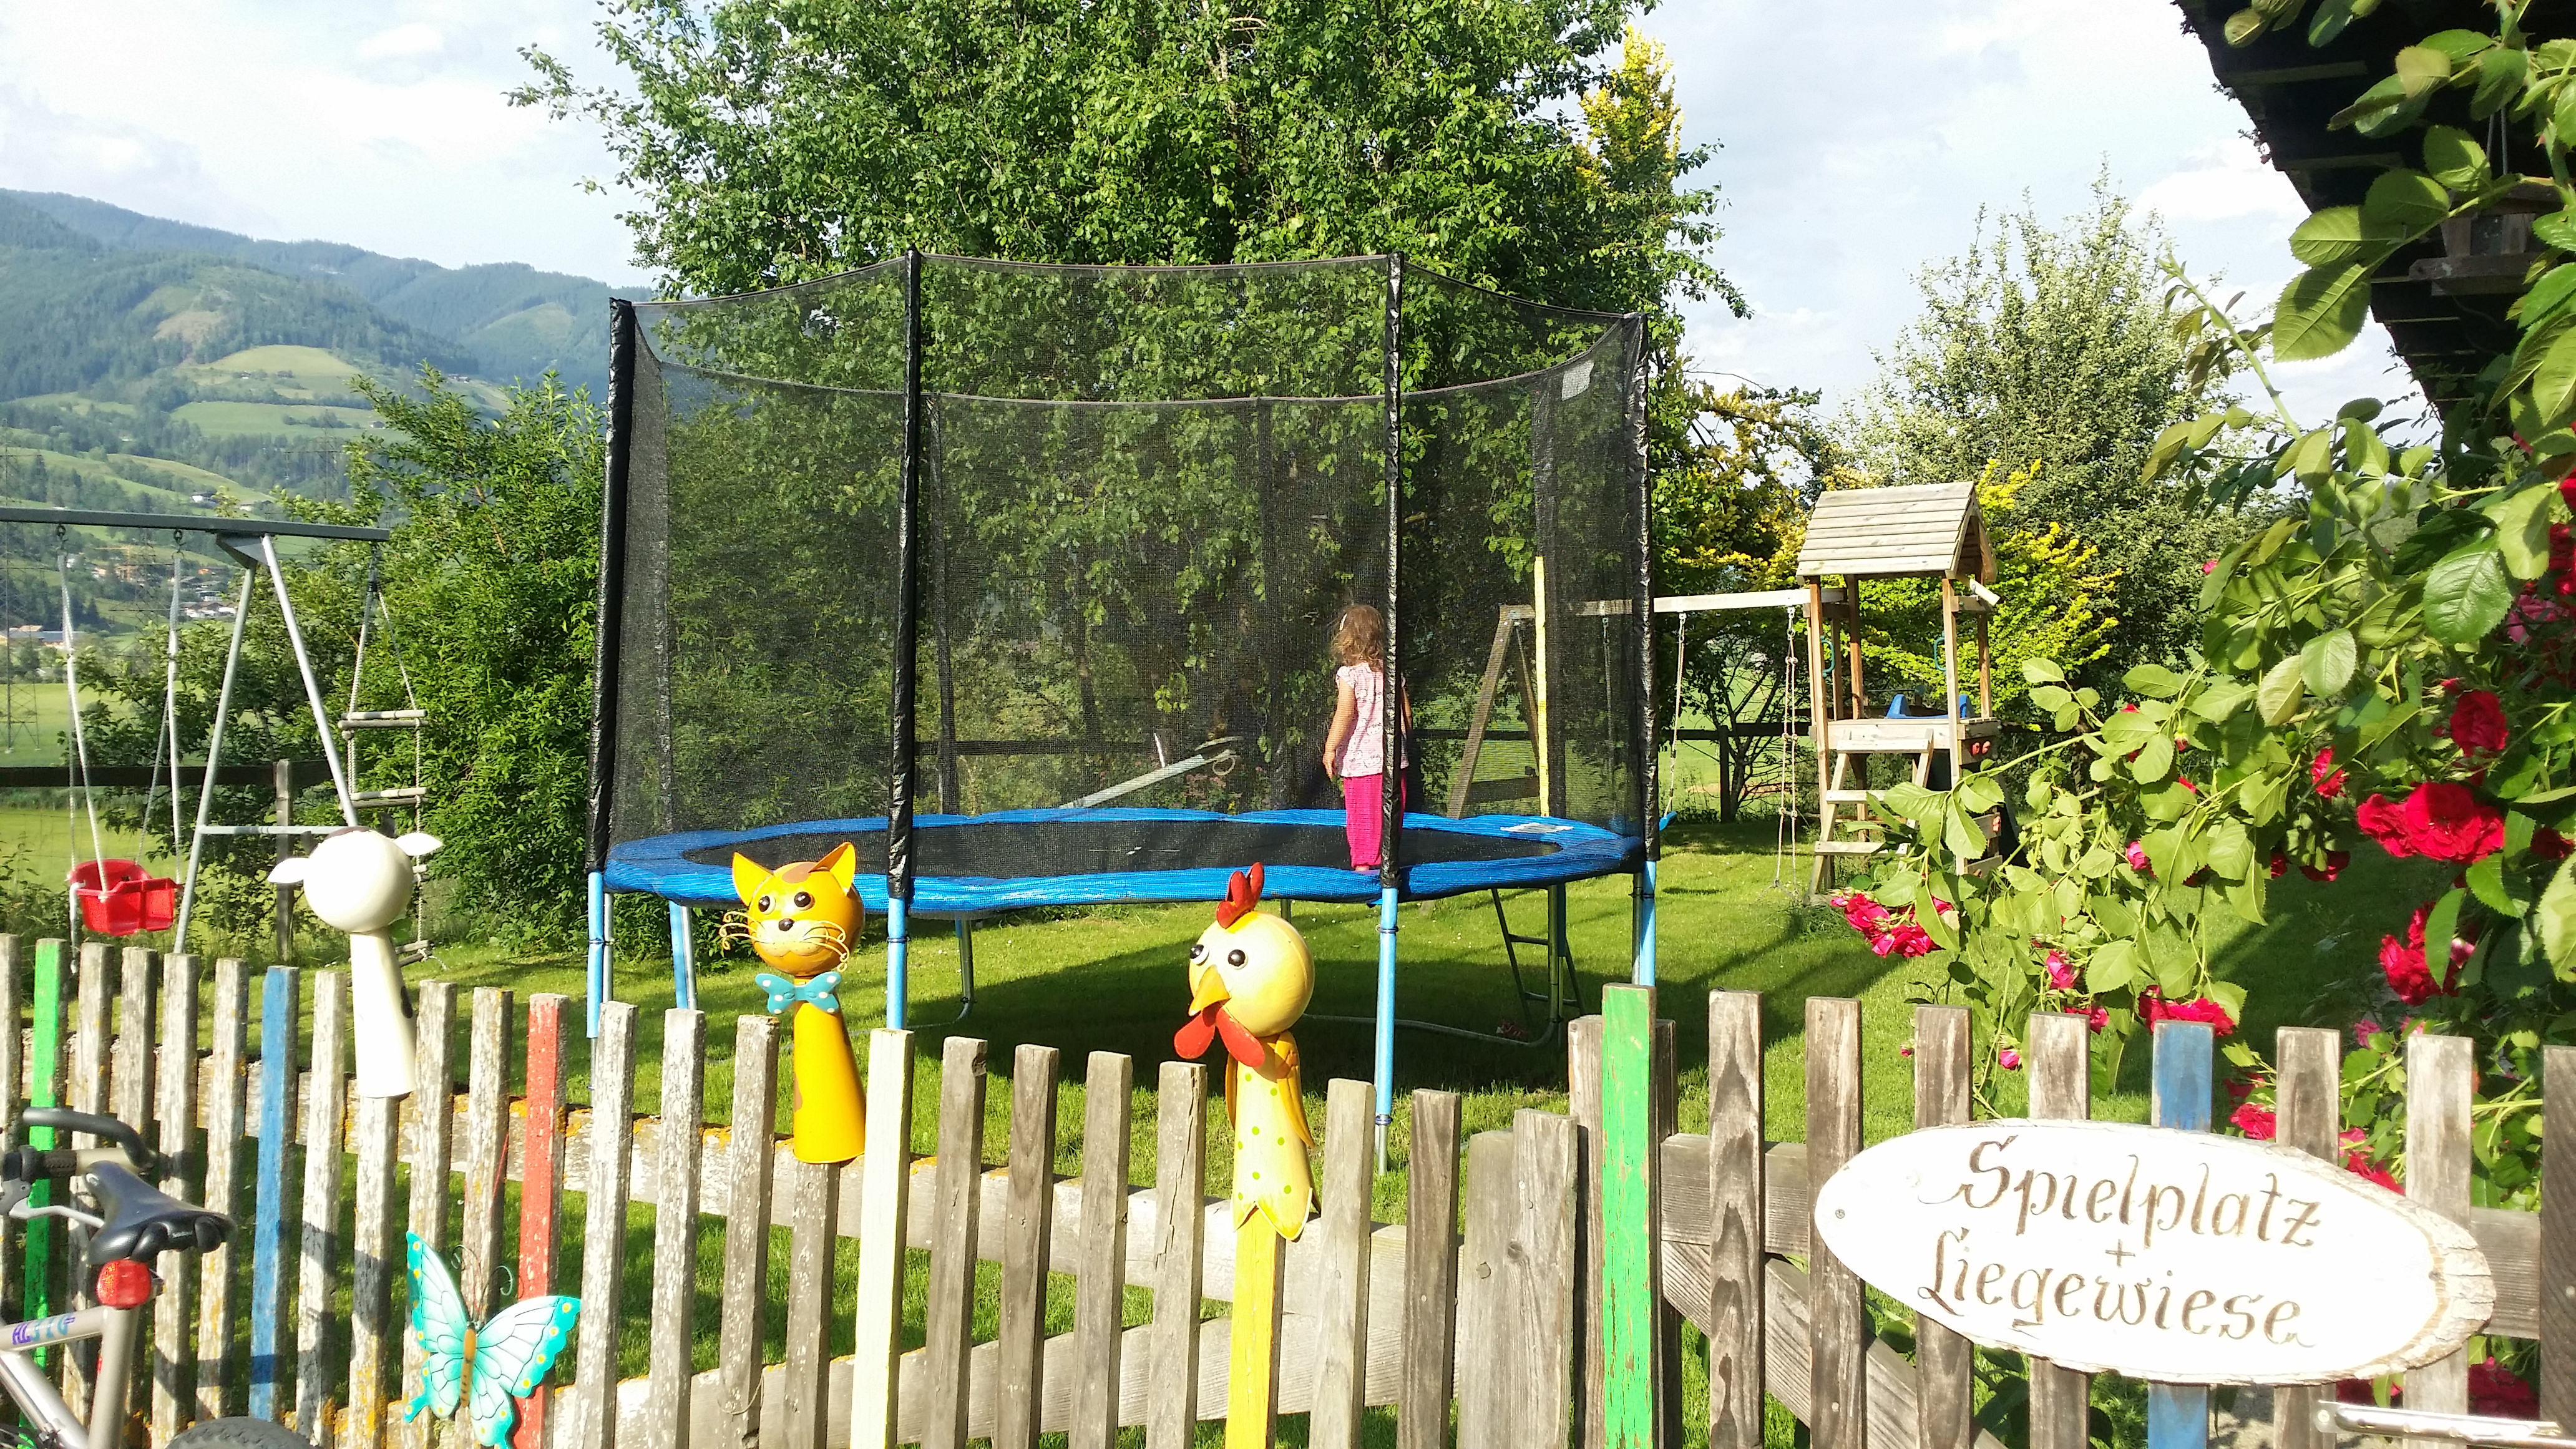 Playground, play room and garden with sun beds